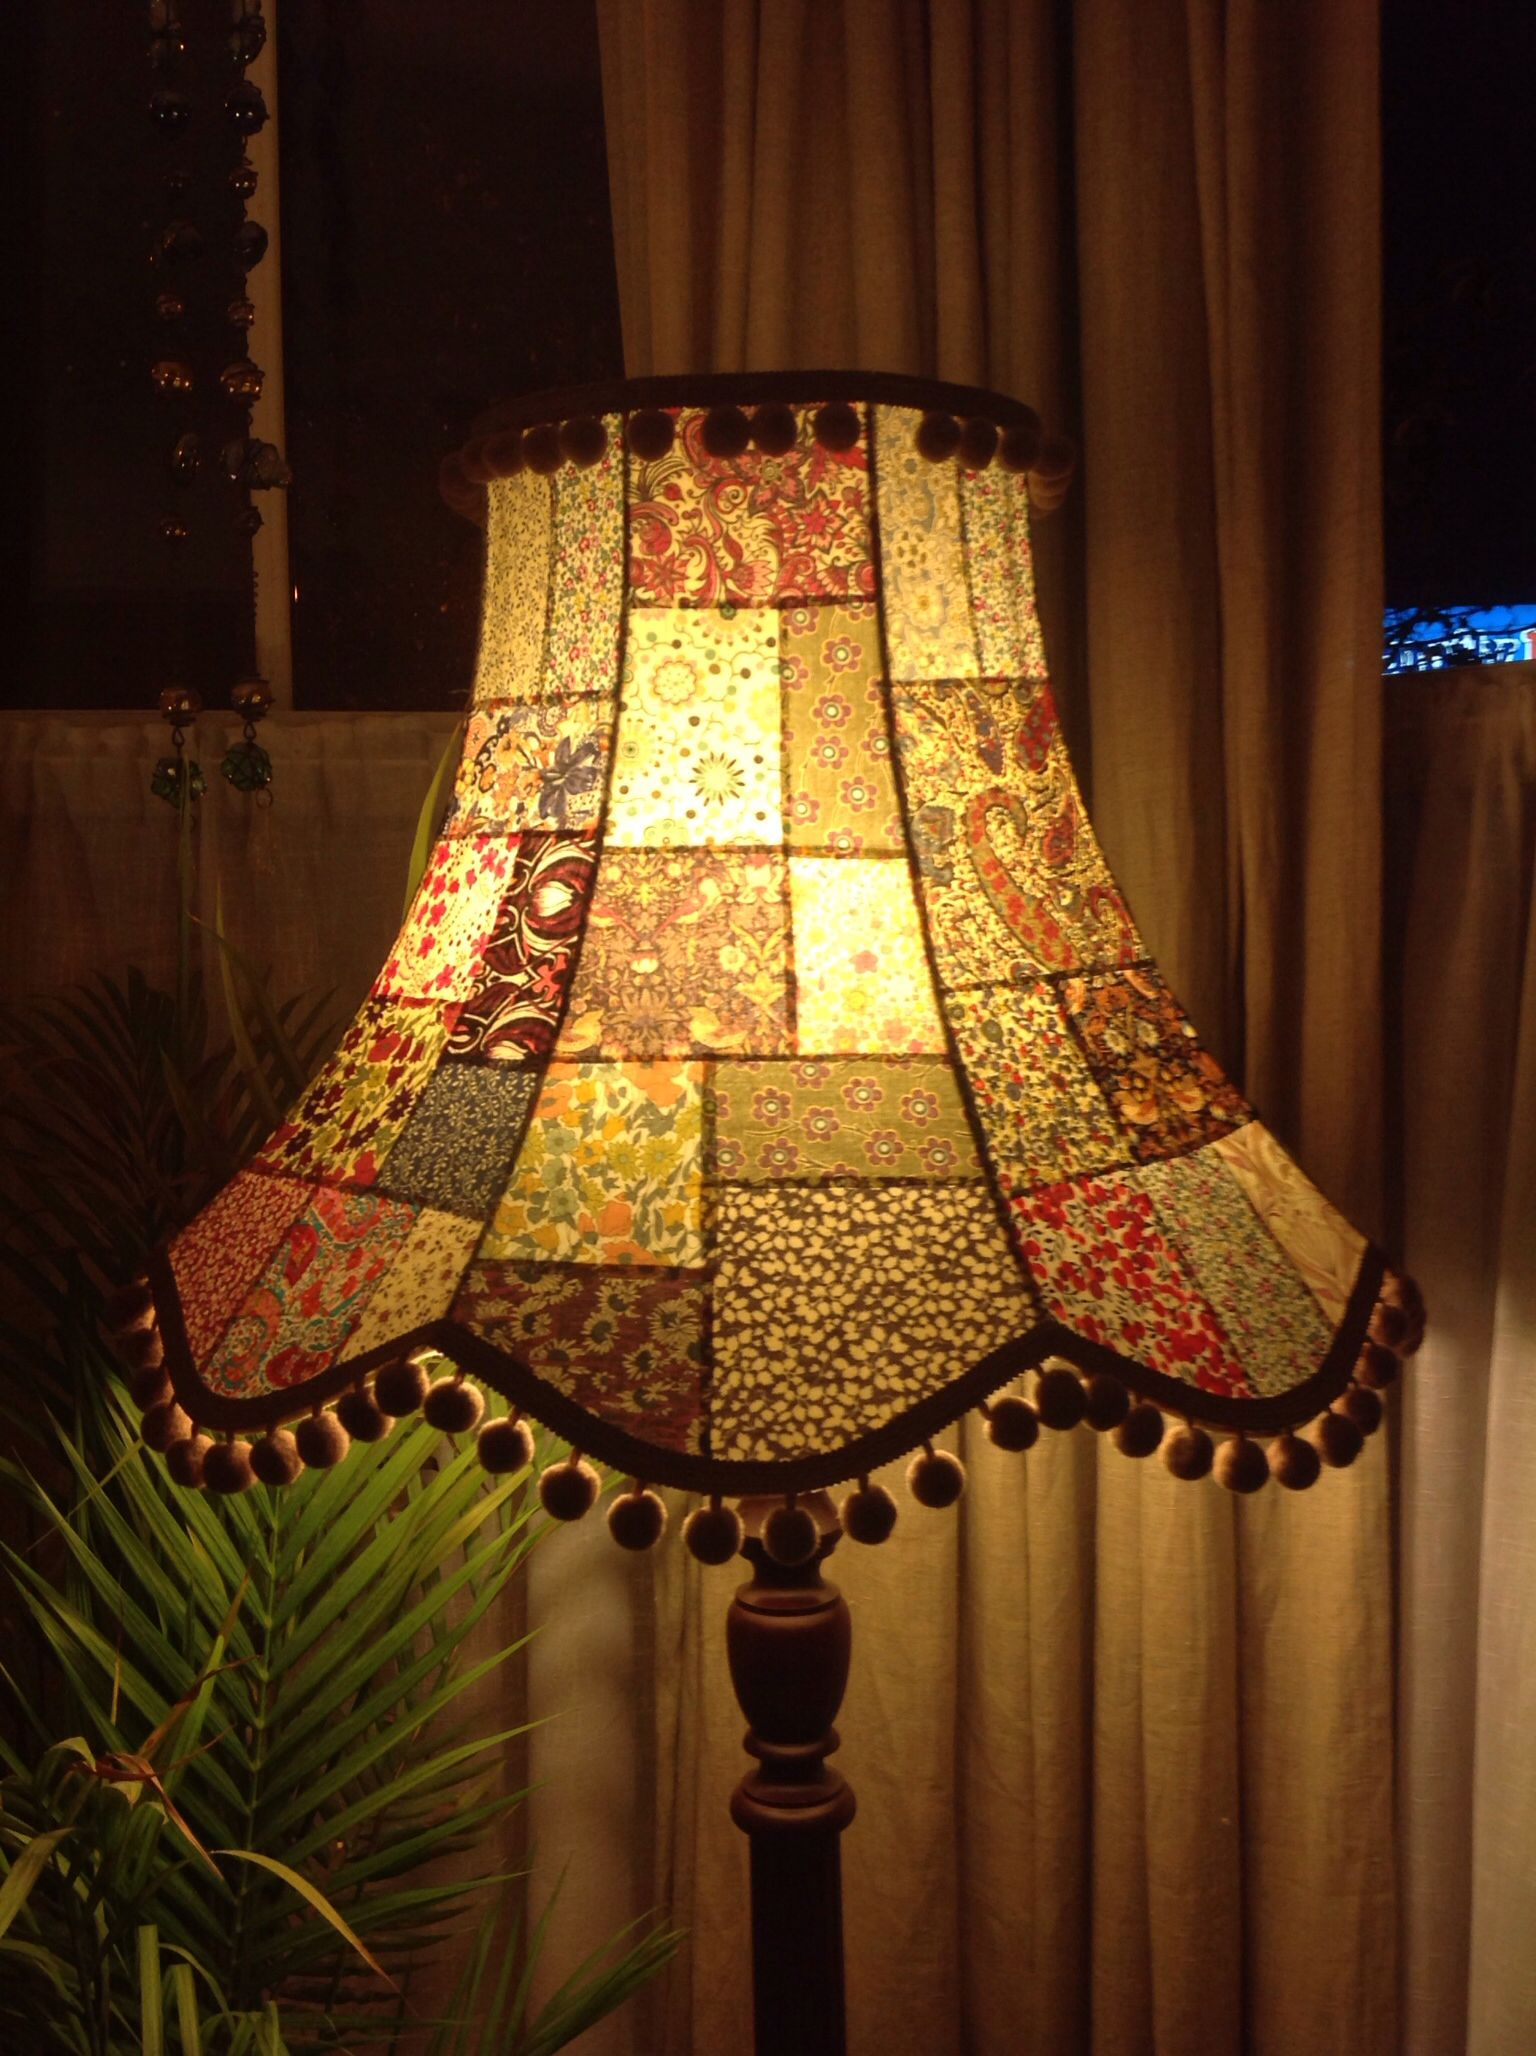 A Gorgeous Handmade Patchwork Standard Lampshade Made From